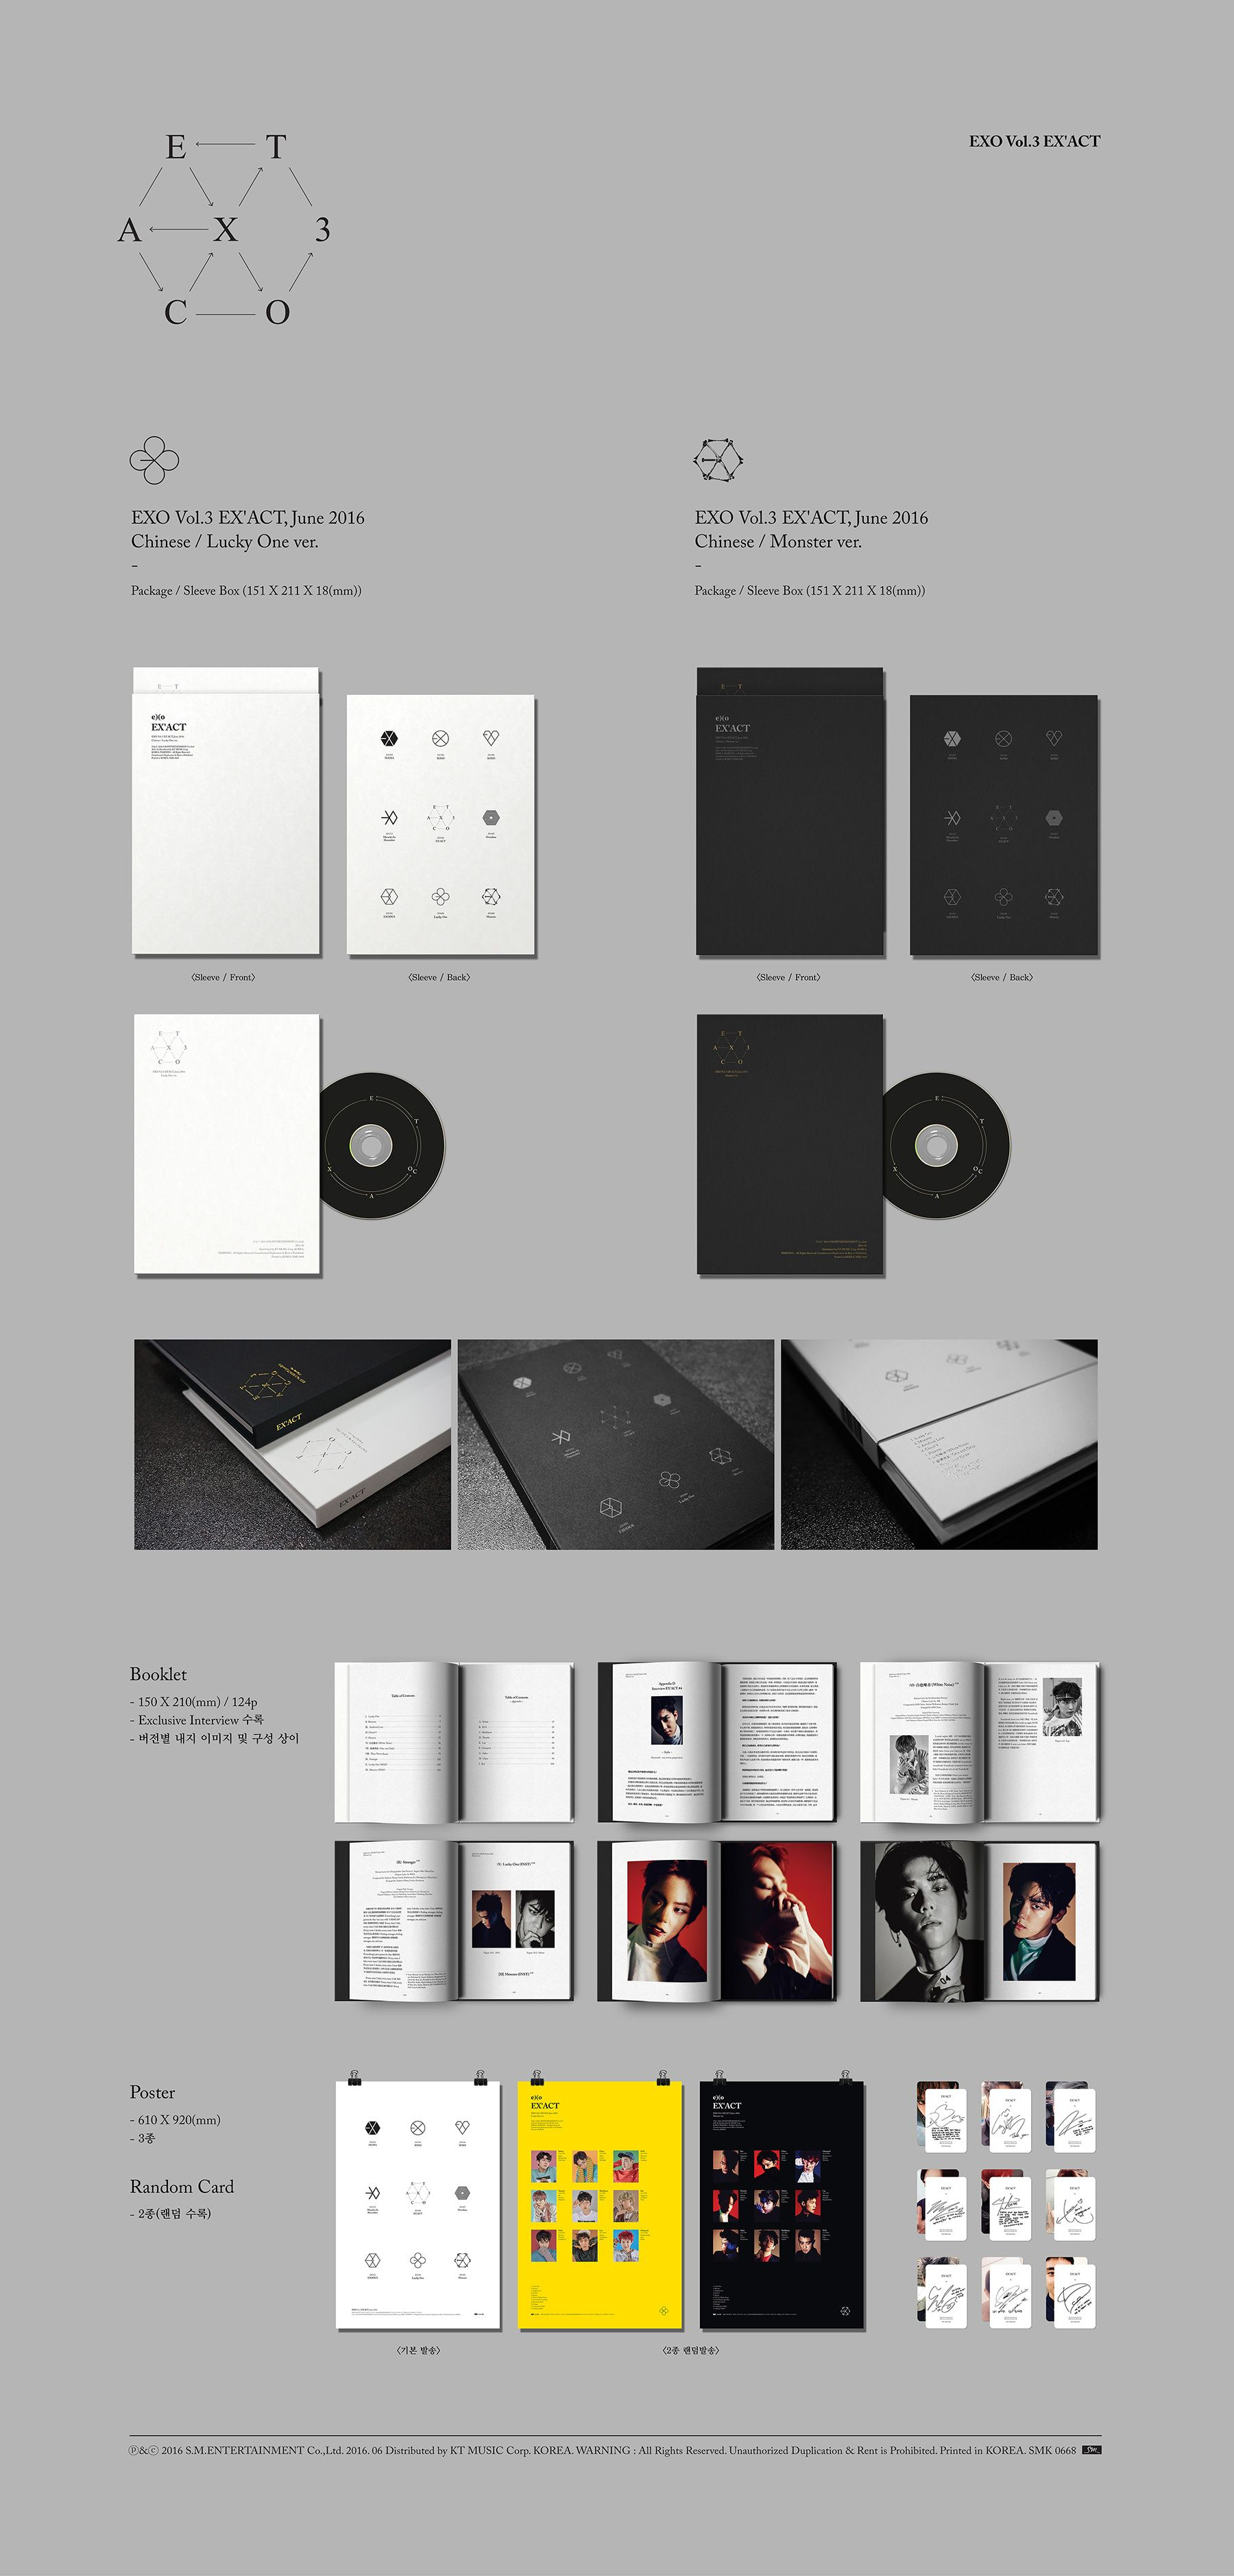 EXO Has Fans Greatly Anticipating Their Comeback Especially With The Recent Hints And Teasers SM Entertainment Revealed Further Details Concerning